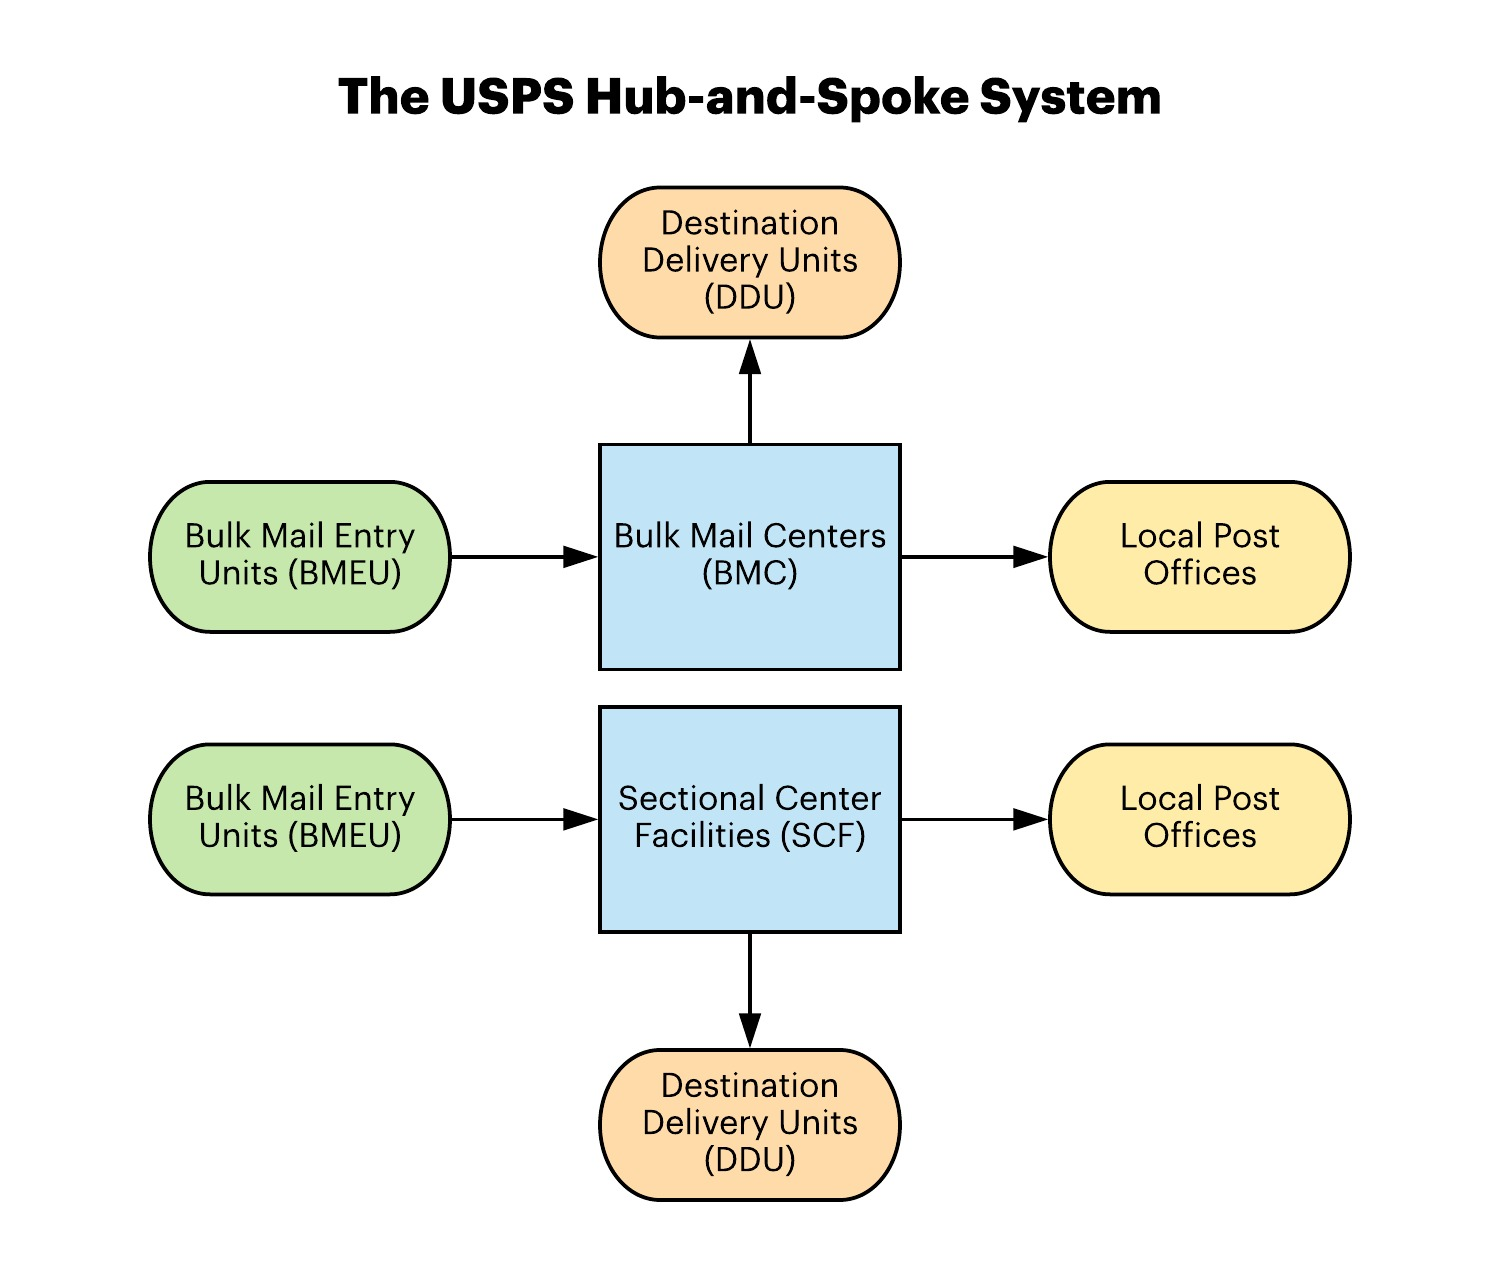 The USPS Hub-and-Spoke System